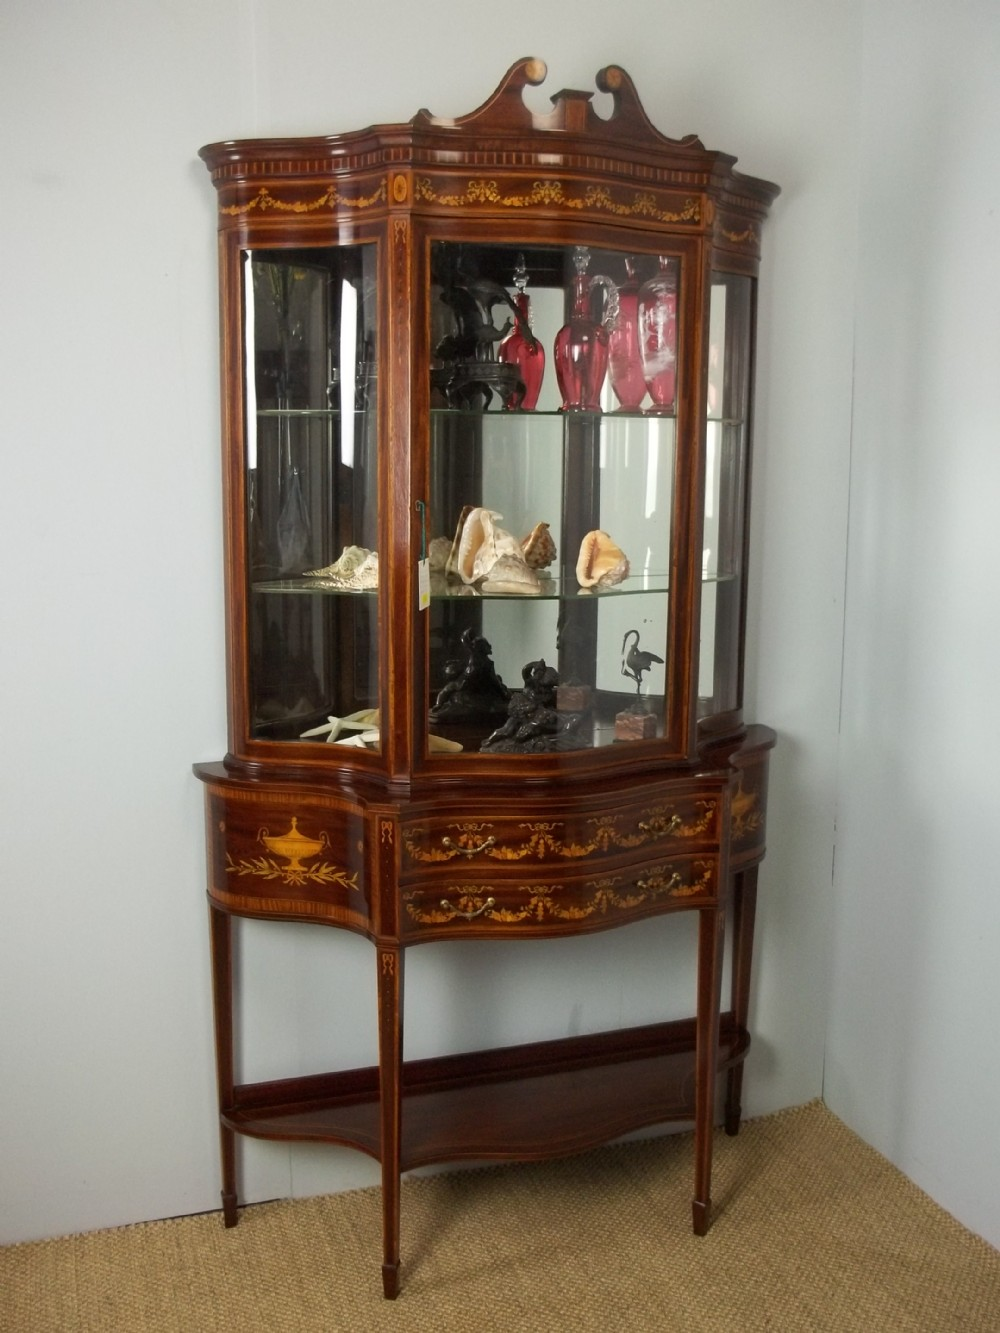 antique stamped edwards and roberts mahogany marquetry inlaid serpentine fronted collectors display cabinet vitrine